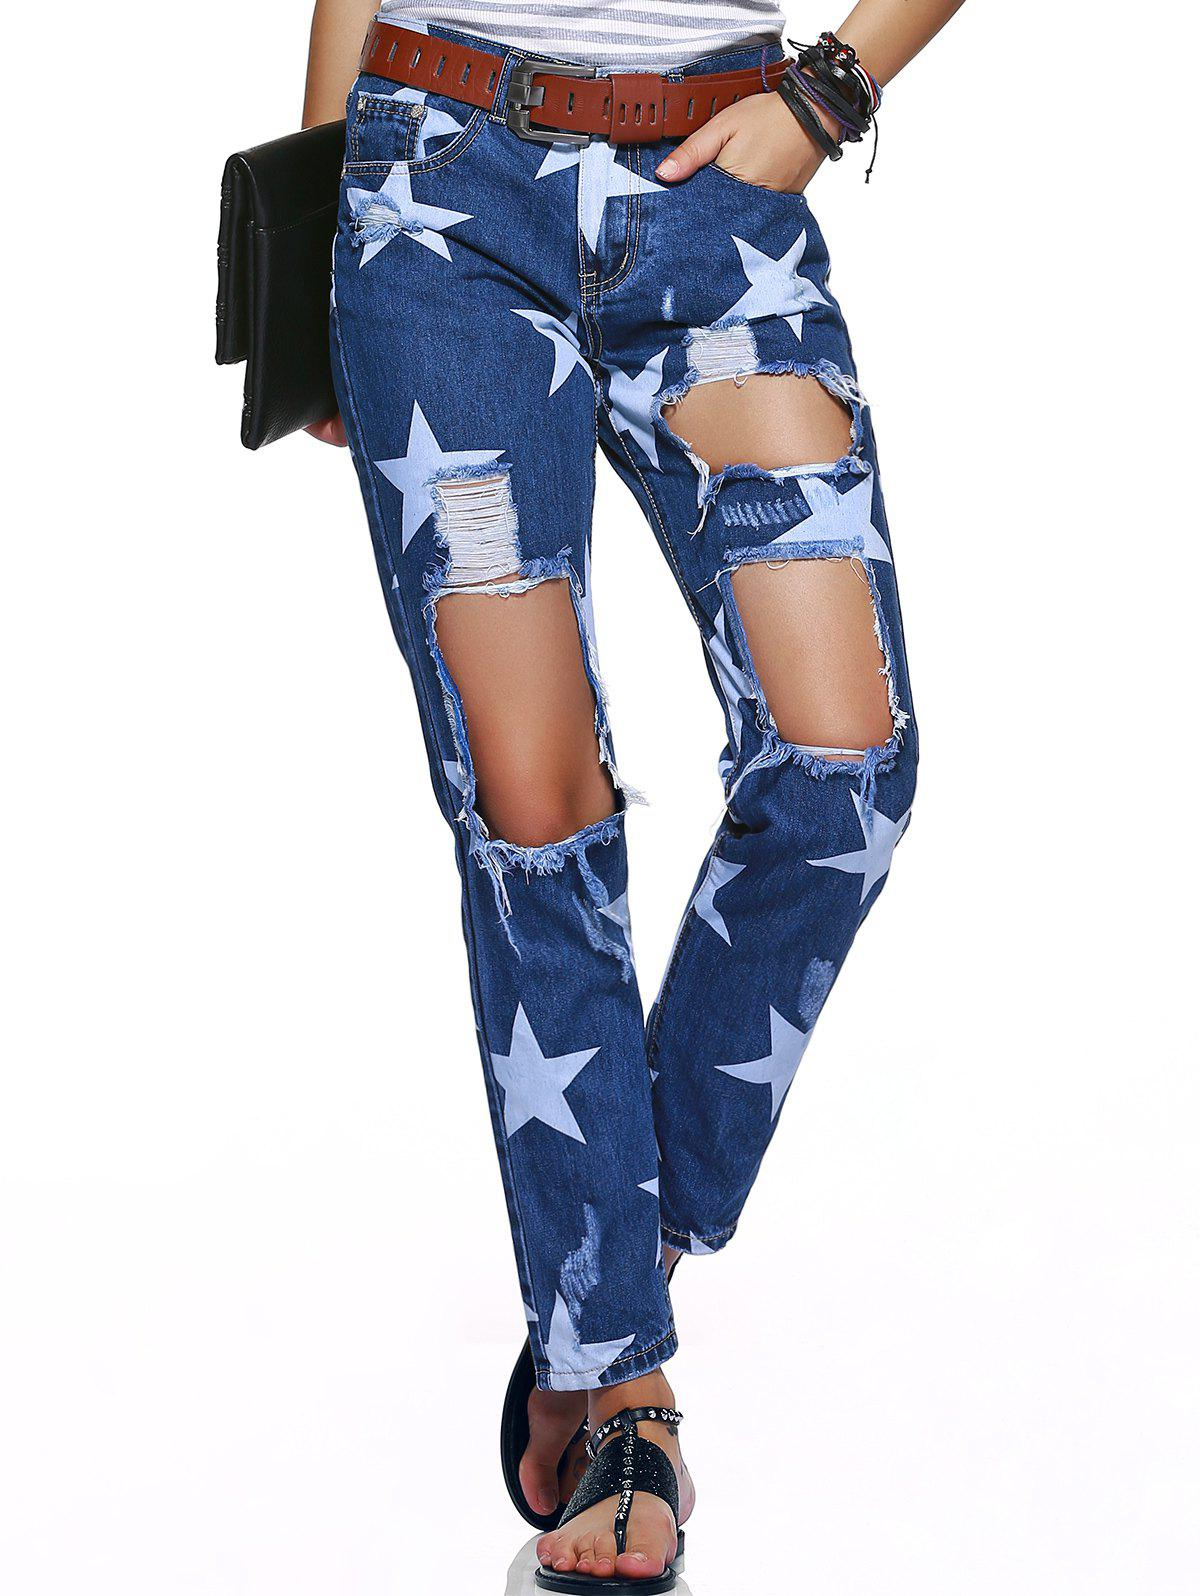 Star Hole Ripped Distressed Jeans - DEEP BLUE 44